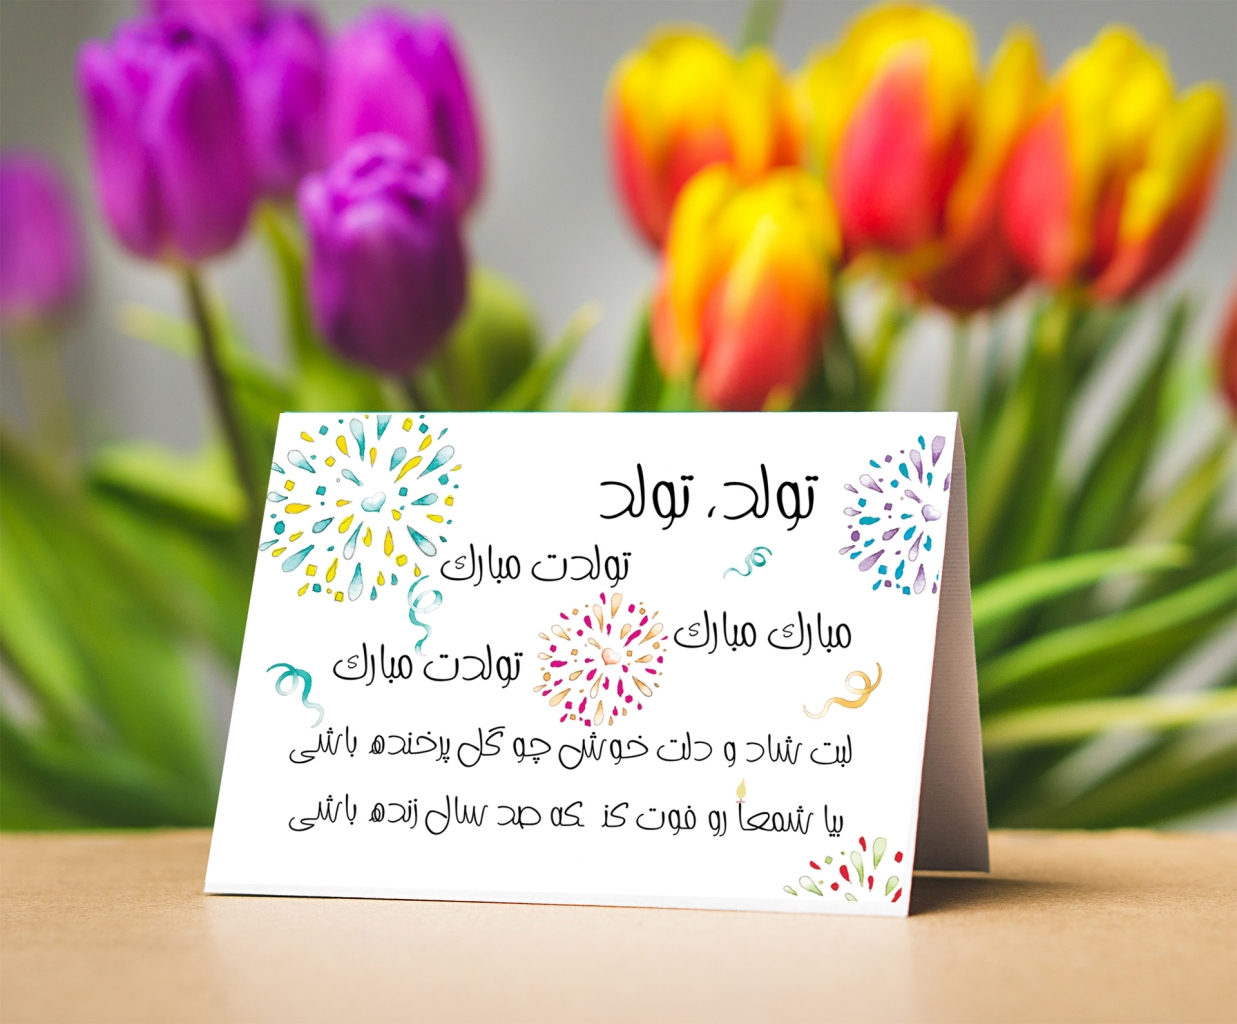 Tavalodet Mobarak In Farsi Persian Happy Birthday Poem Card Share the happy birthday poems with others via text/sms, email, facebook, whatsapp, im, etc. in farsi persian happy birthday poem card